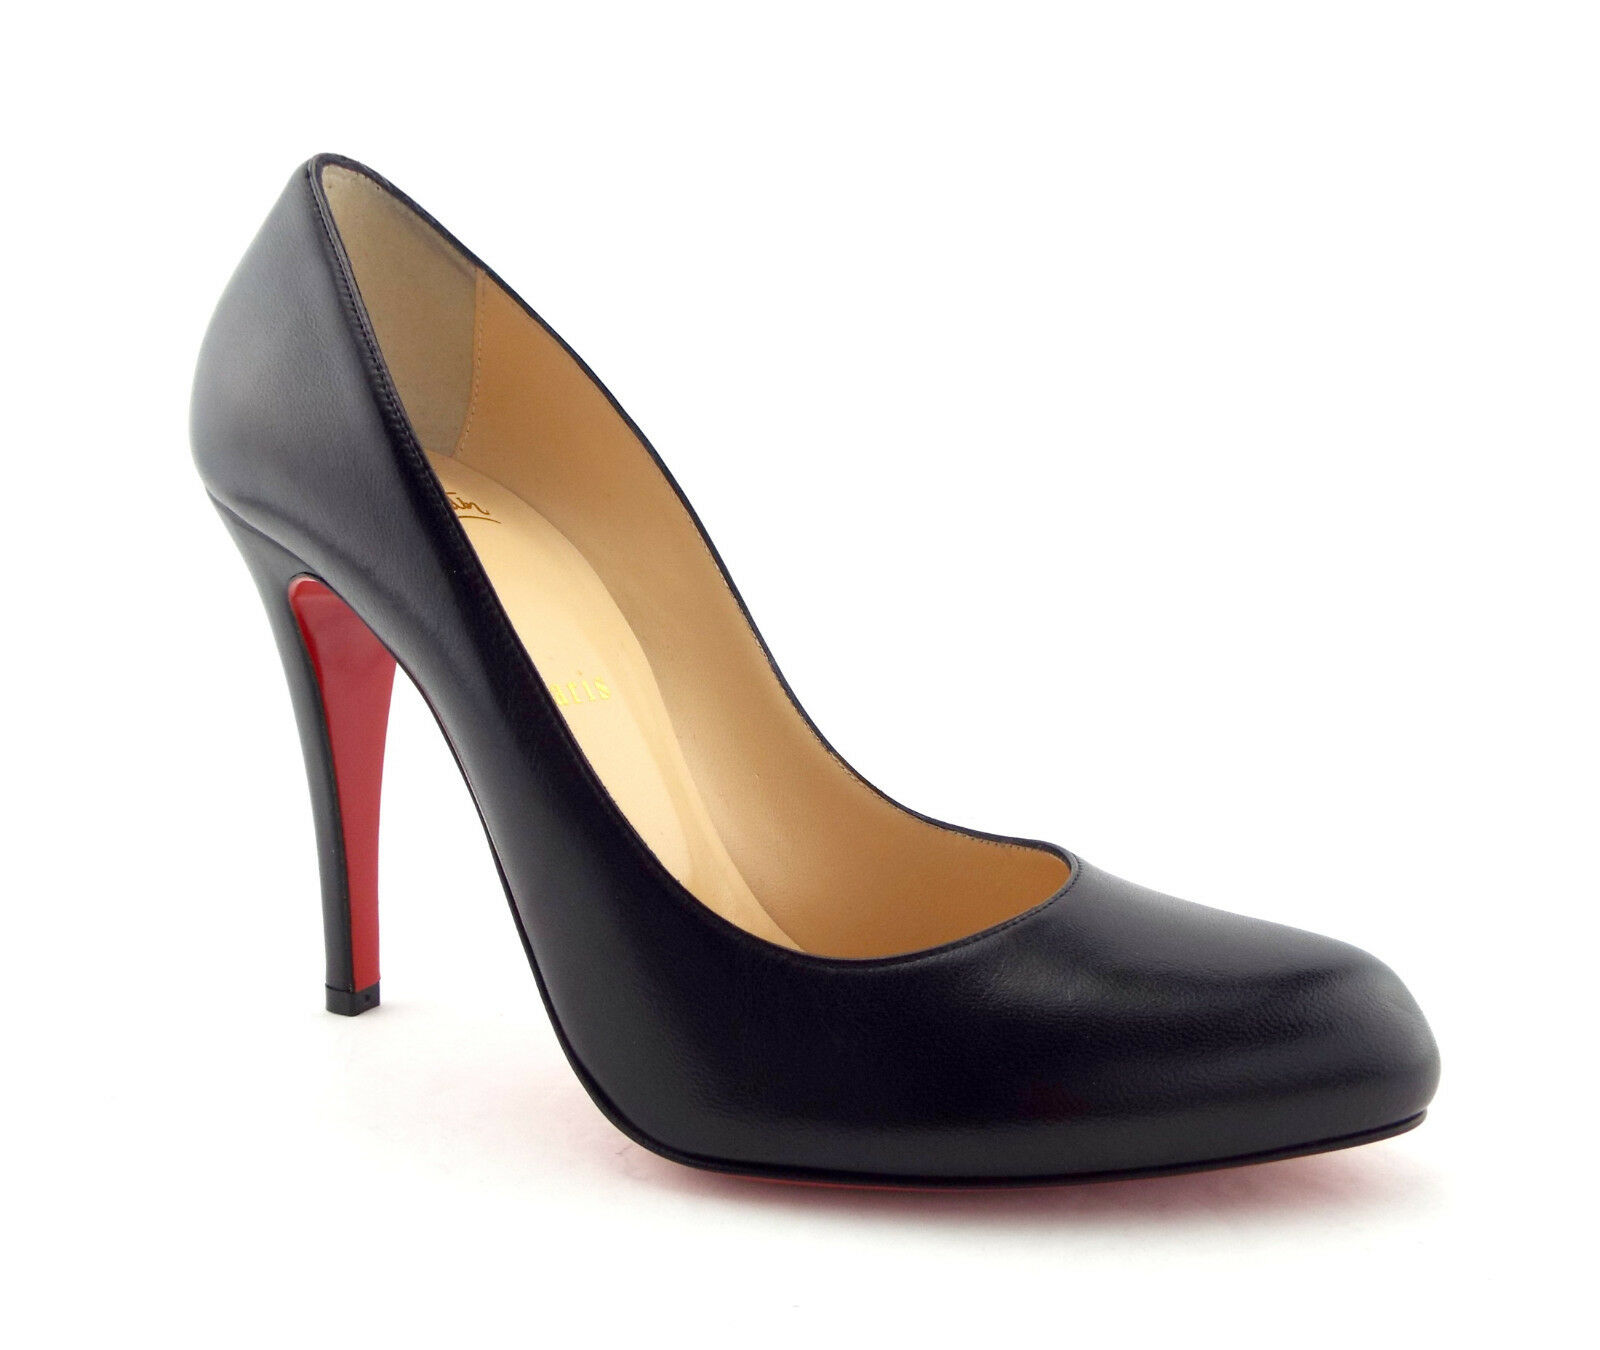 official photos bb817 2be43 New CHRISTIAN LOUBOUTIN Size 8.5 DECOLLETE 868 Heels Pumps ...